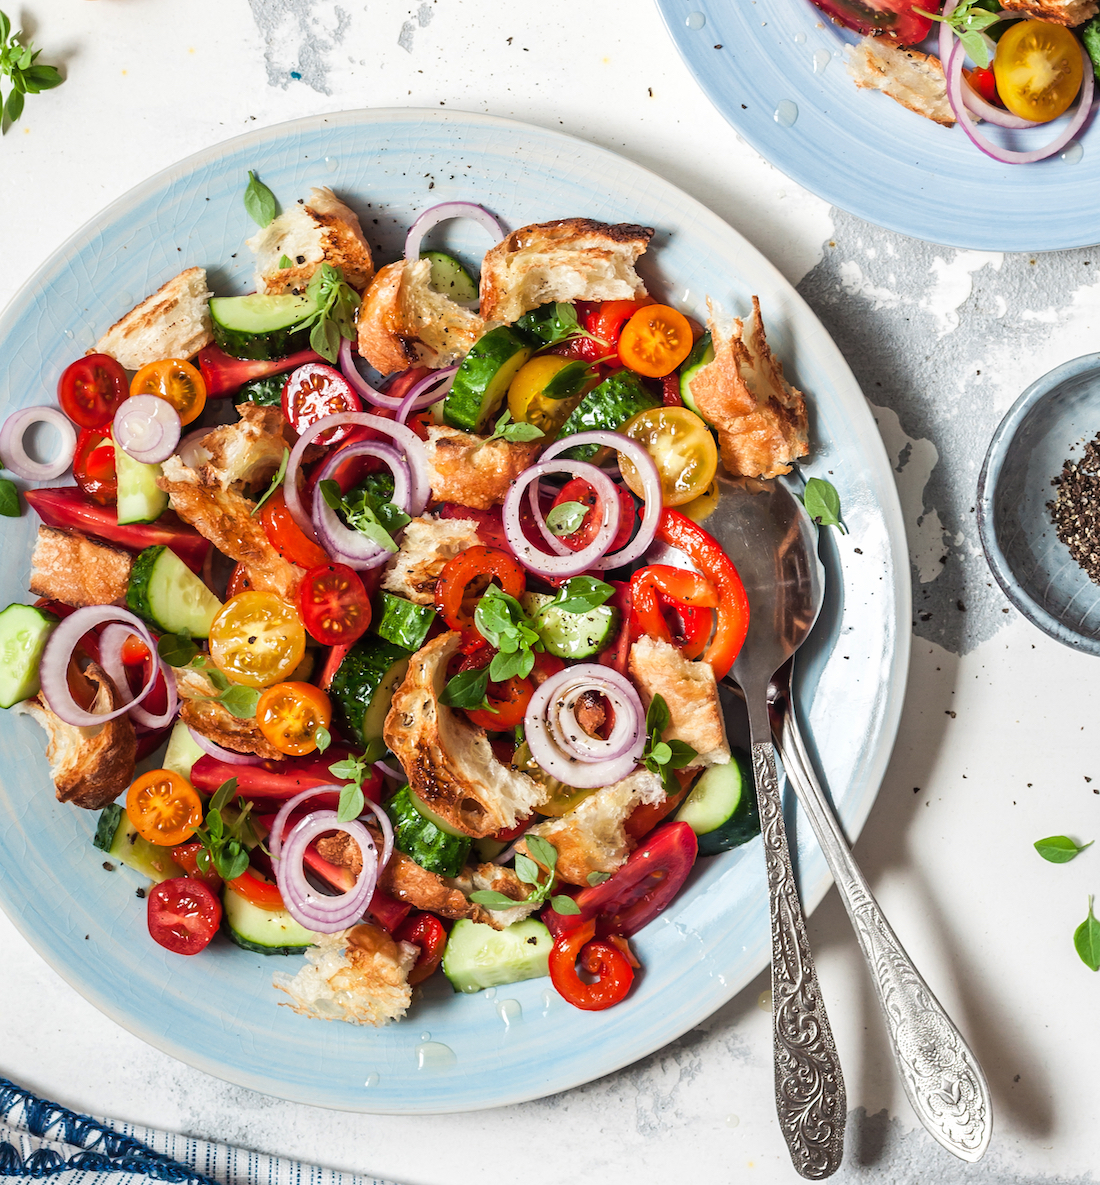 Panzanella ©Tatiana Vorona shutterstock